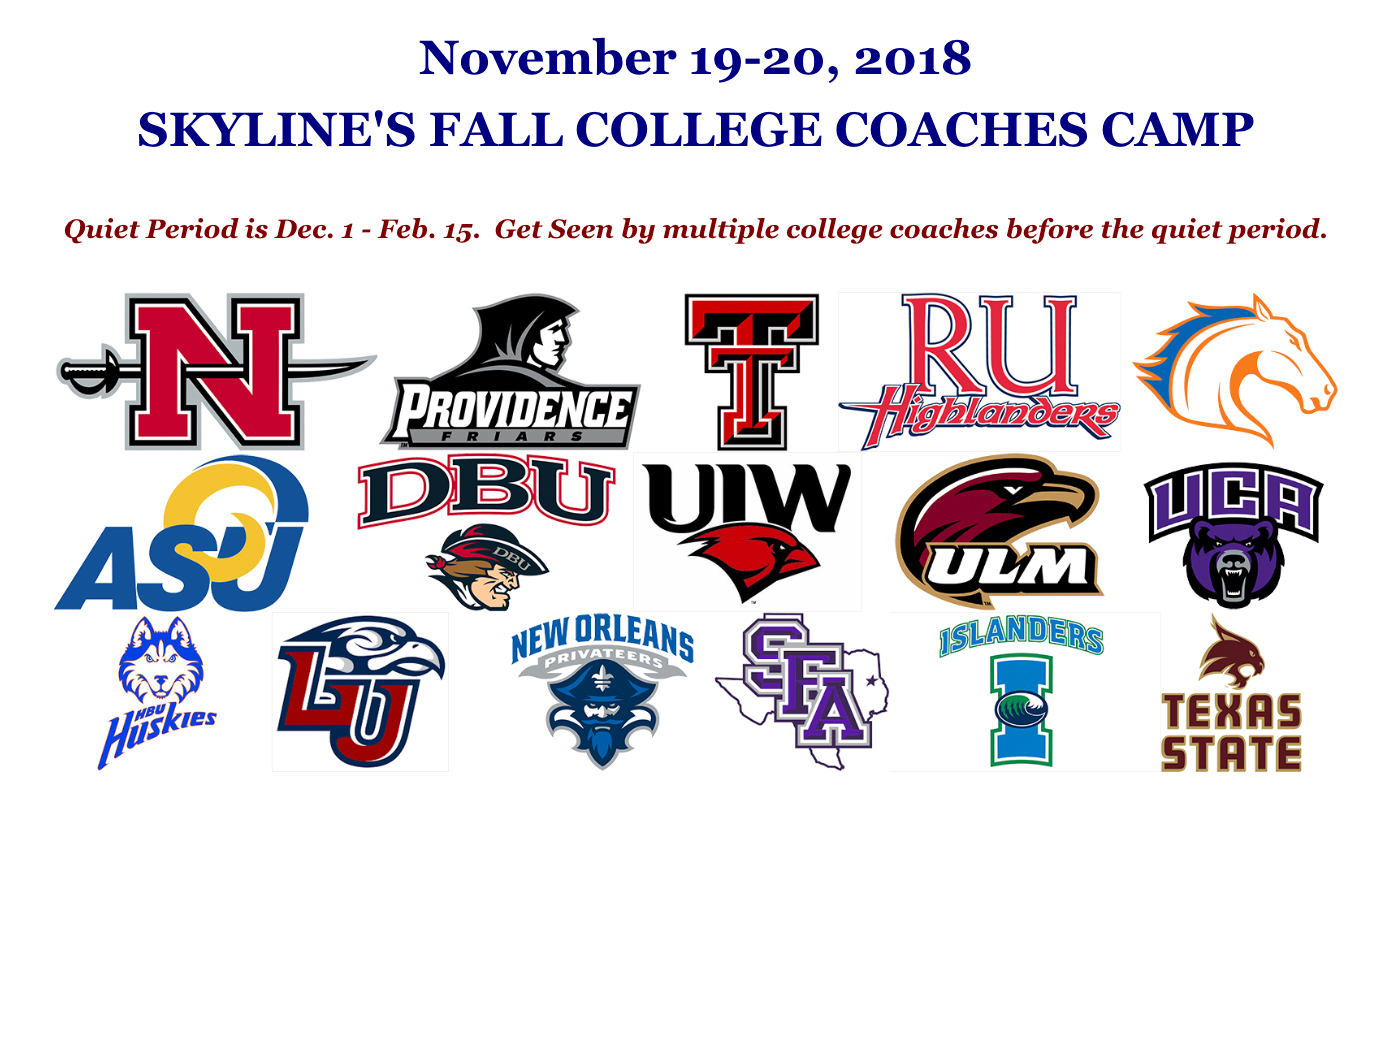 Skyline's Fall College Coaches Camp